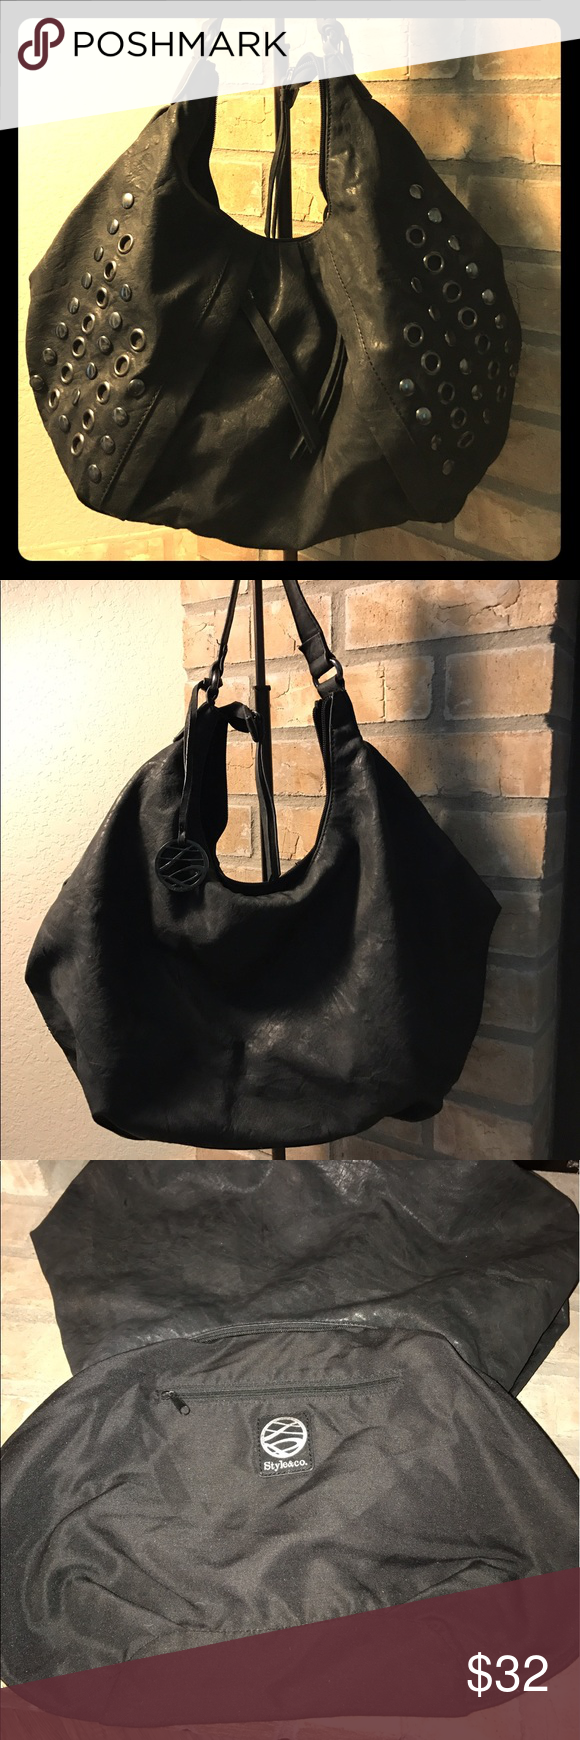 Uncategorized Leather Like Material black hobo bag like new condition super cute two front pockets gently used